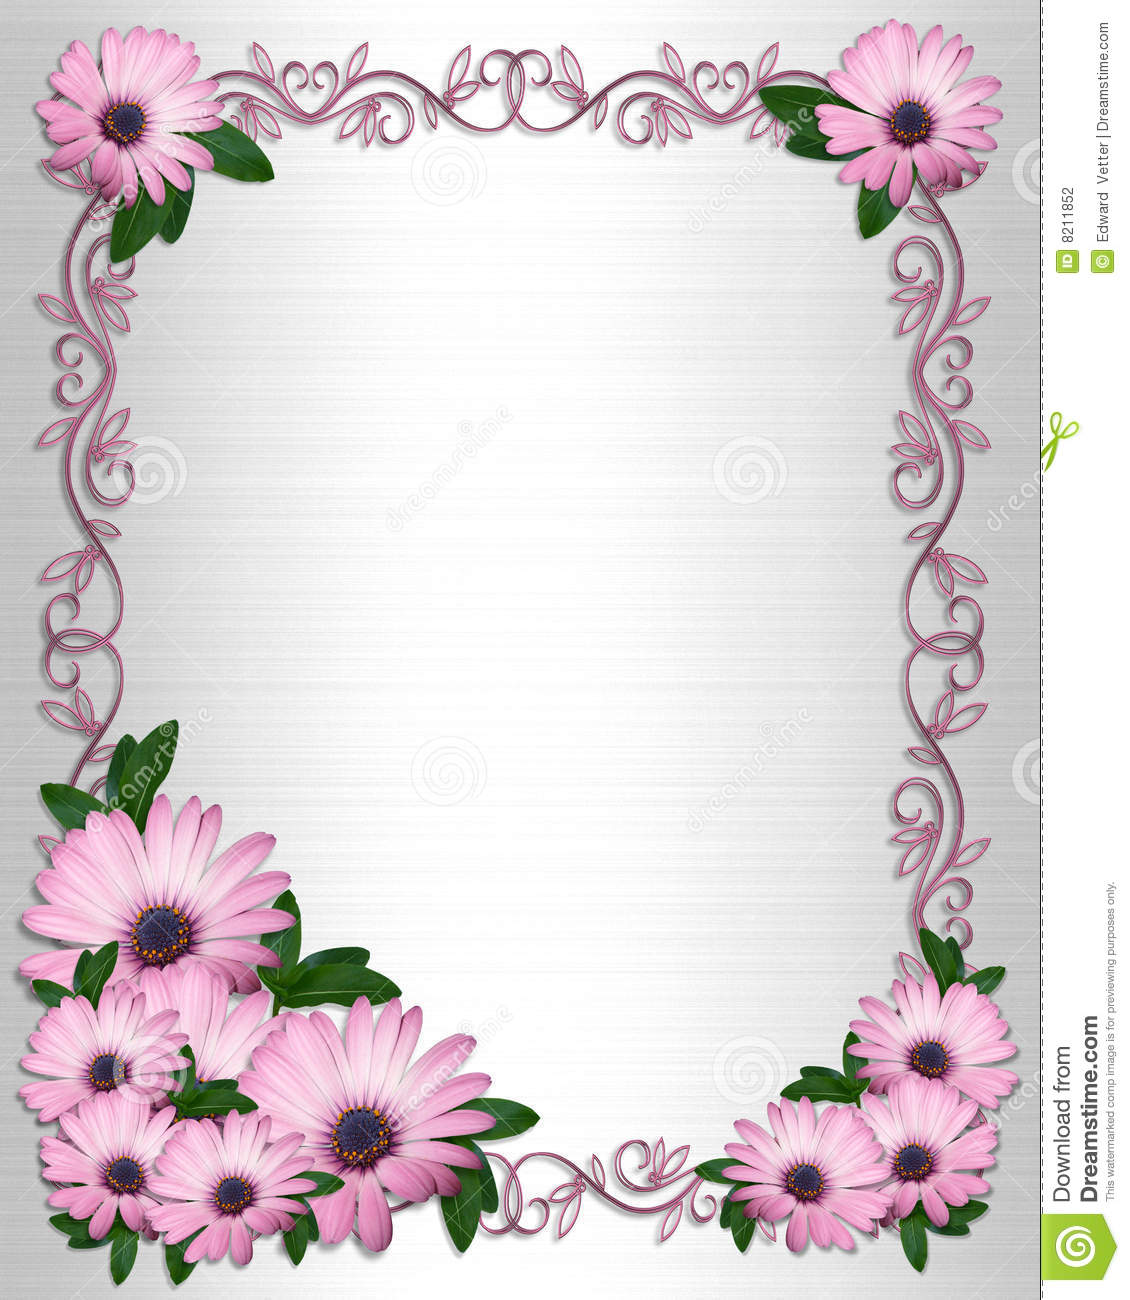 Wedding Invitation Backgrounpurple Daisies Border Stock Illustration